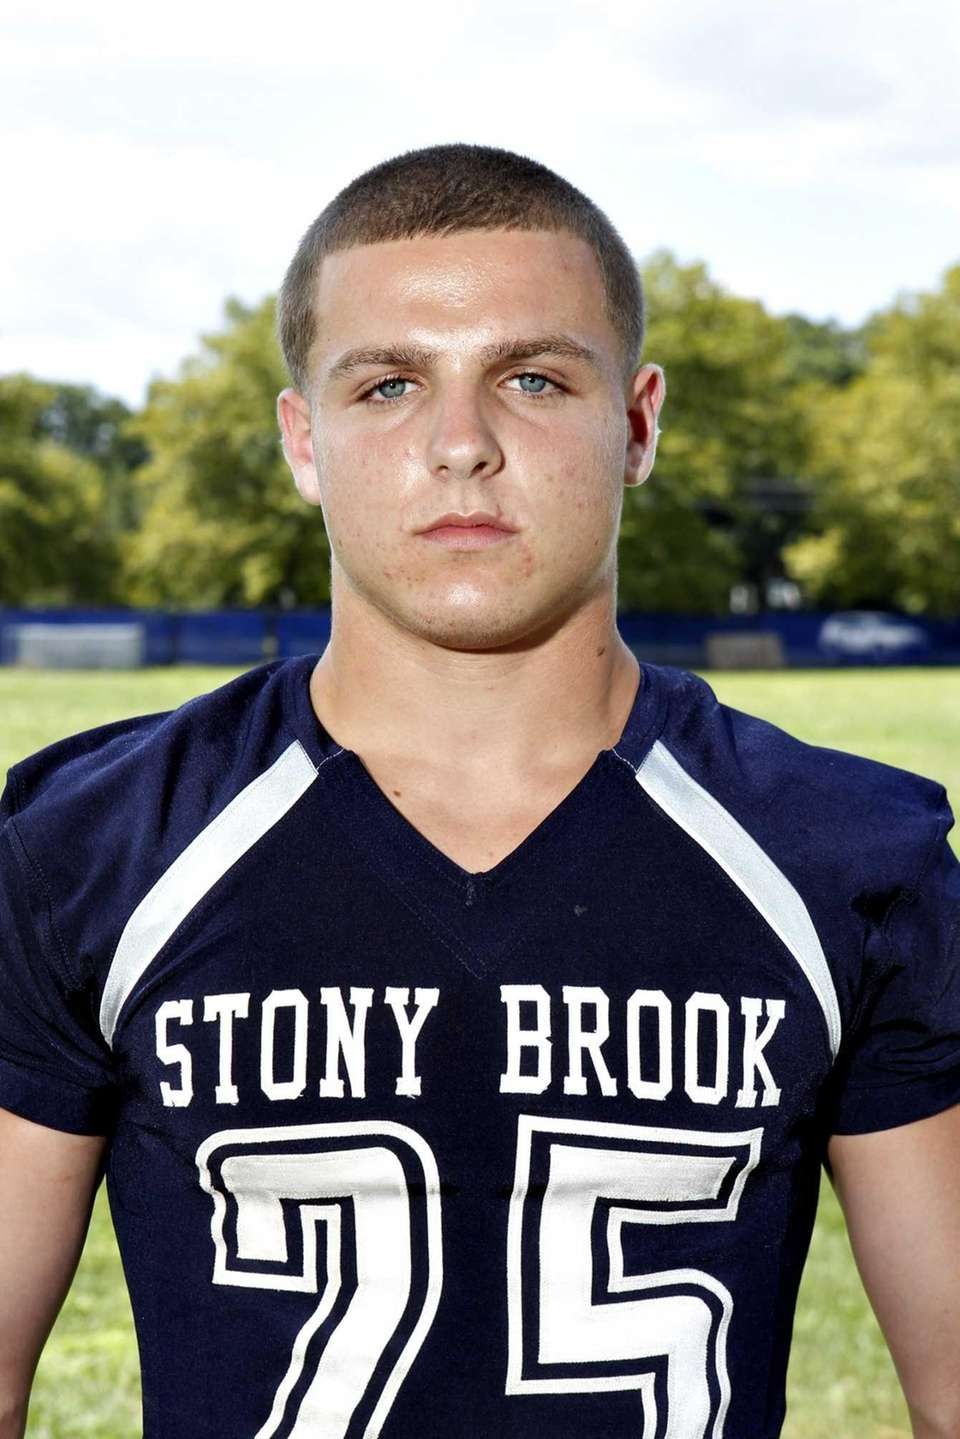 DONALD LIOTINE Stony Brook, Senior, RB/DB 5-10, 185